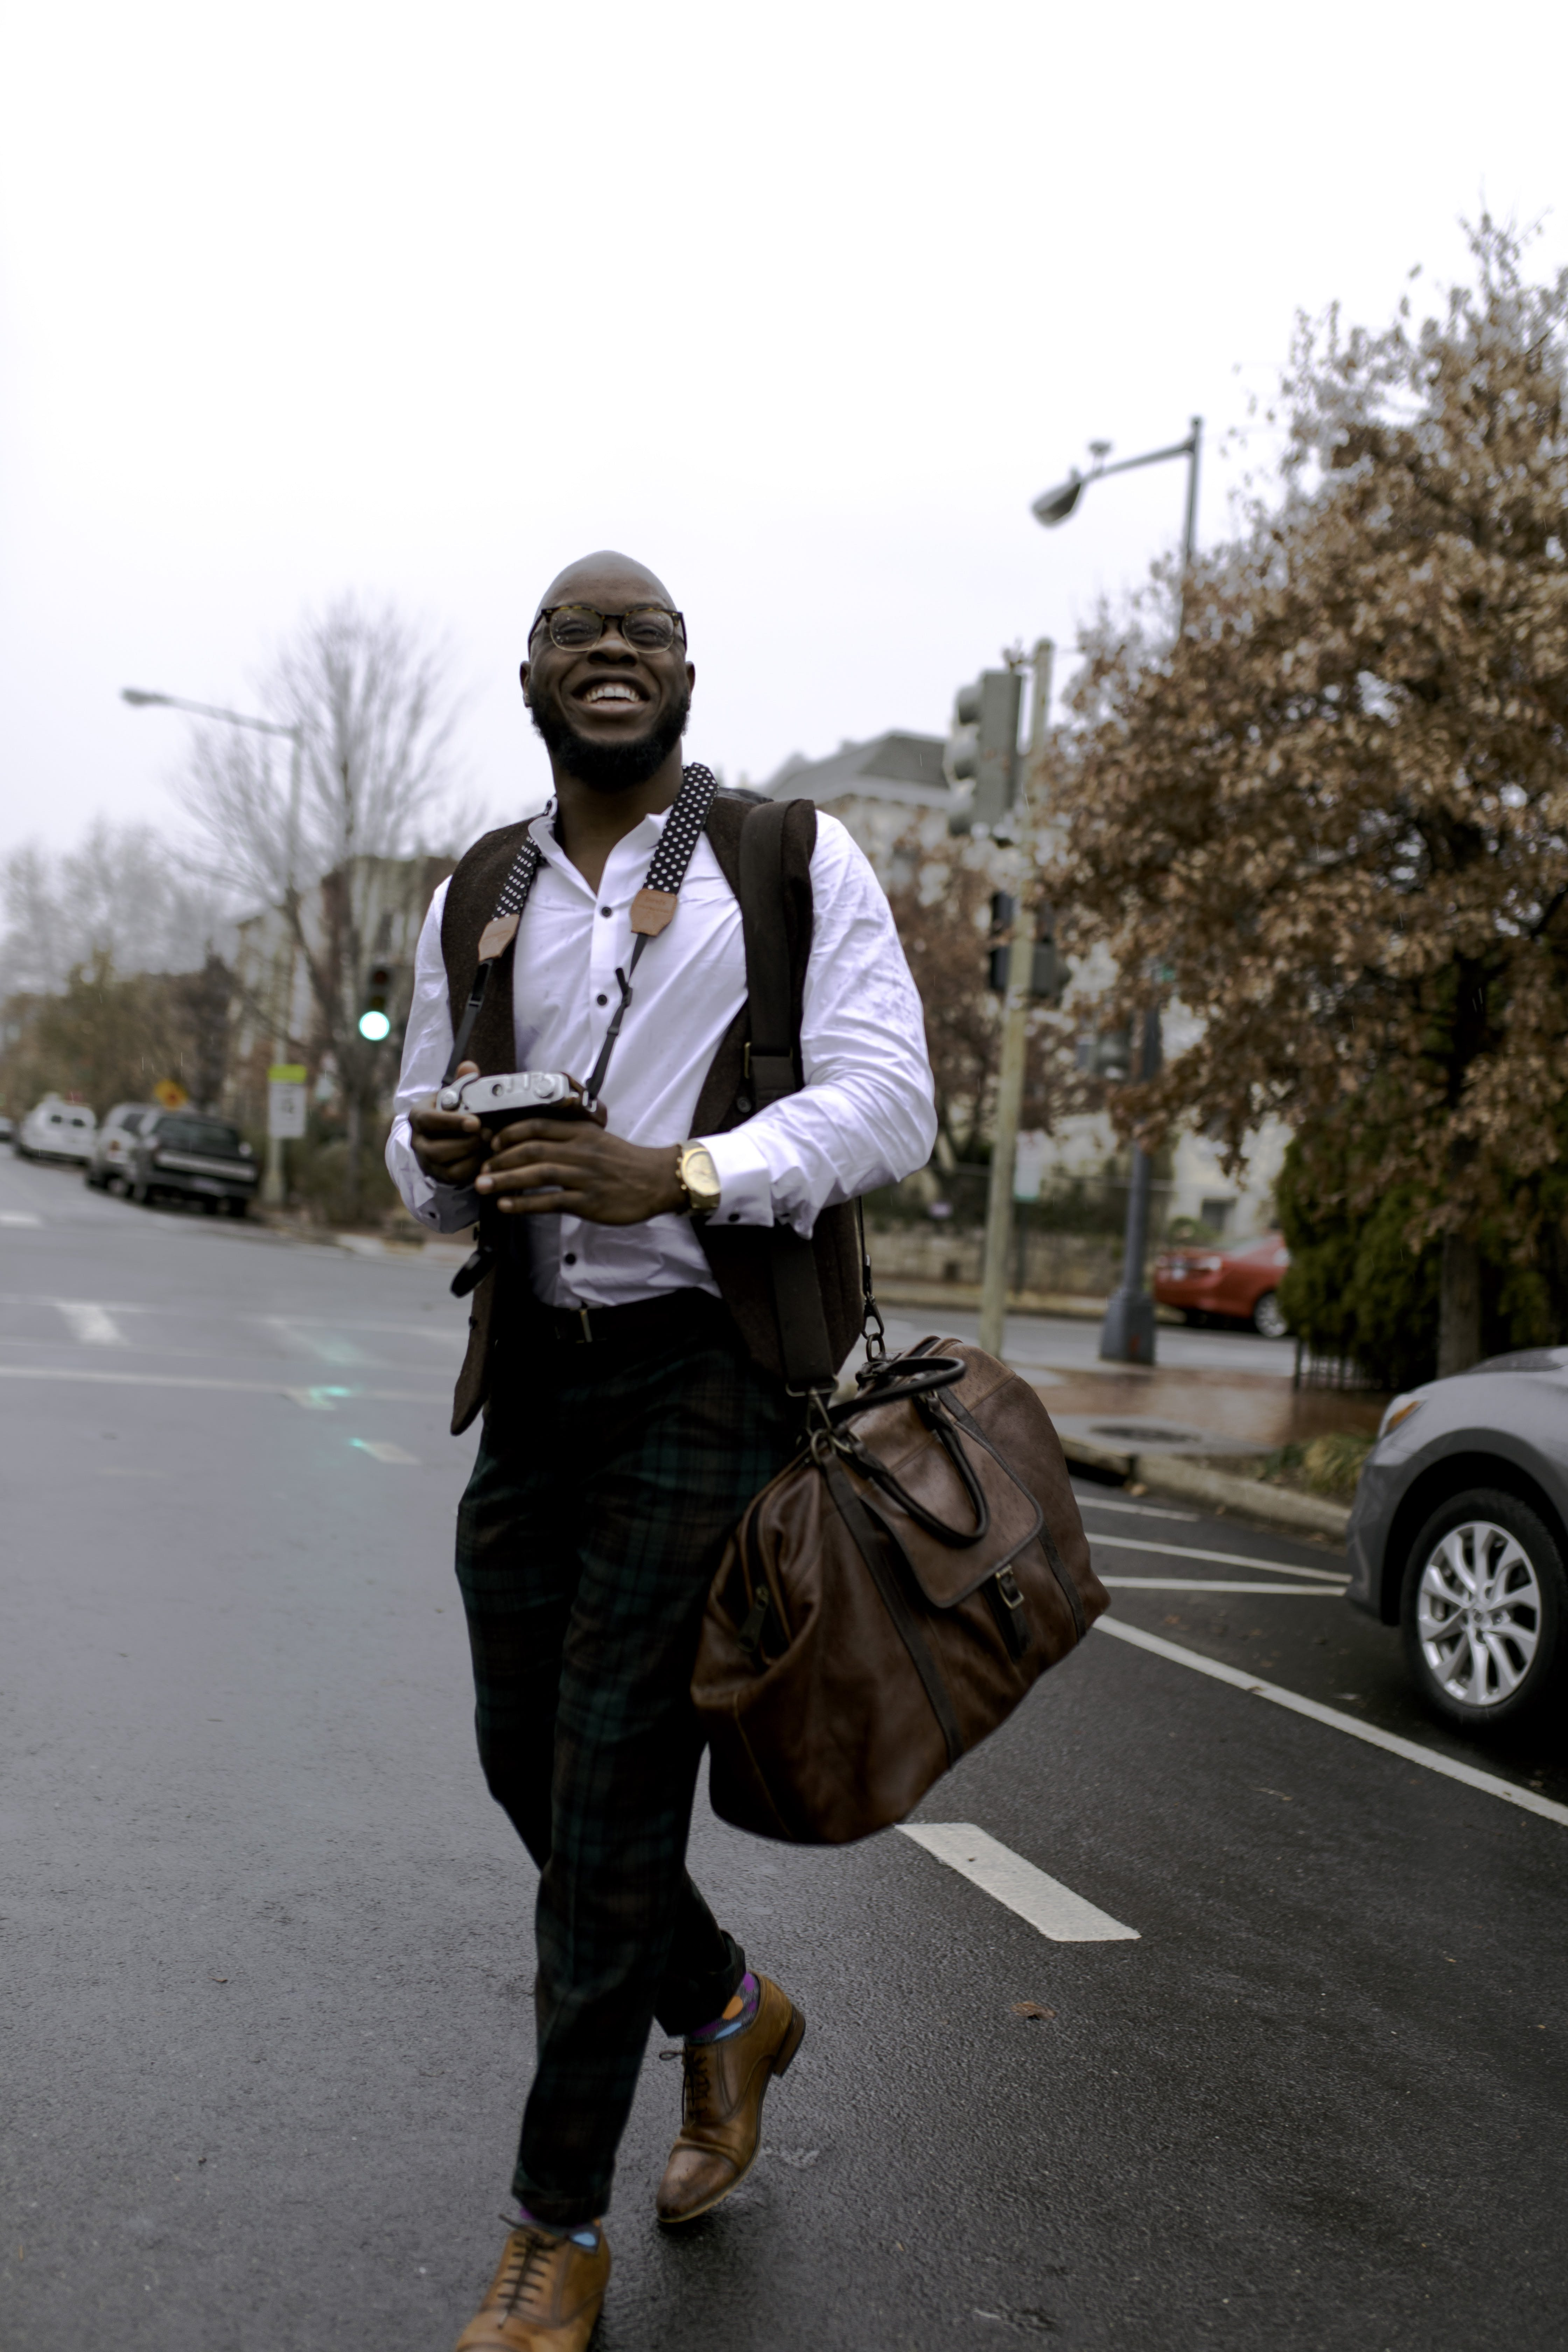 Man in White Button-up Dress Shirt Holding Camera While Smiling and Crossing Street